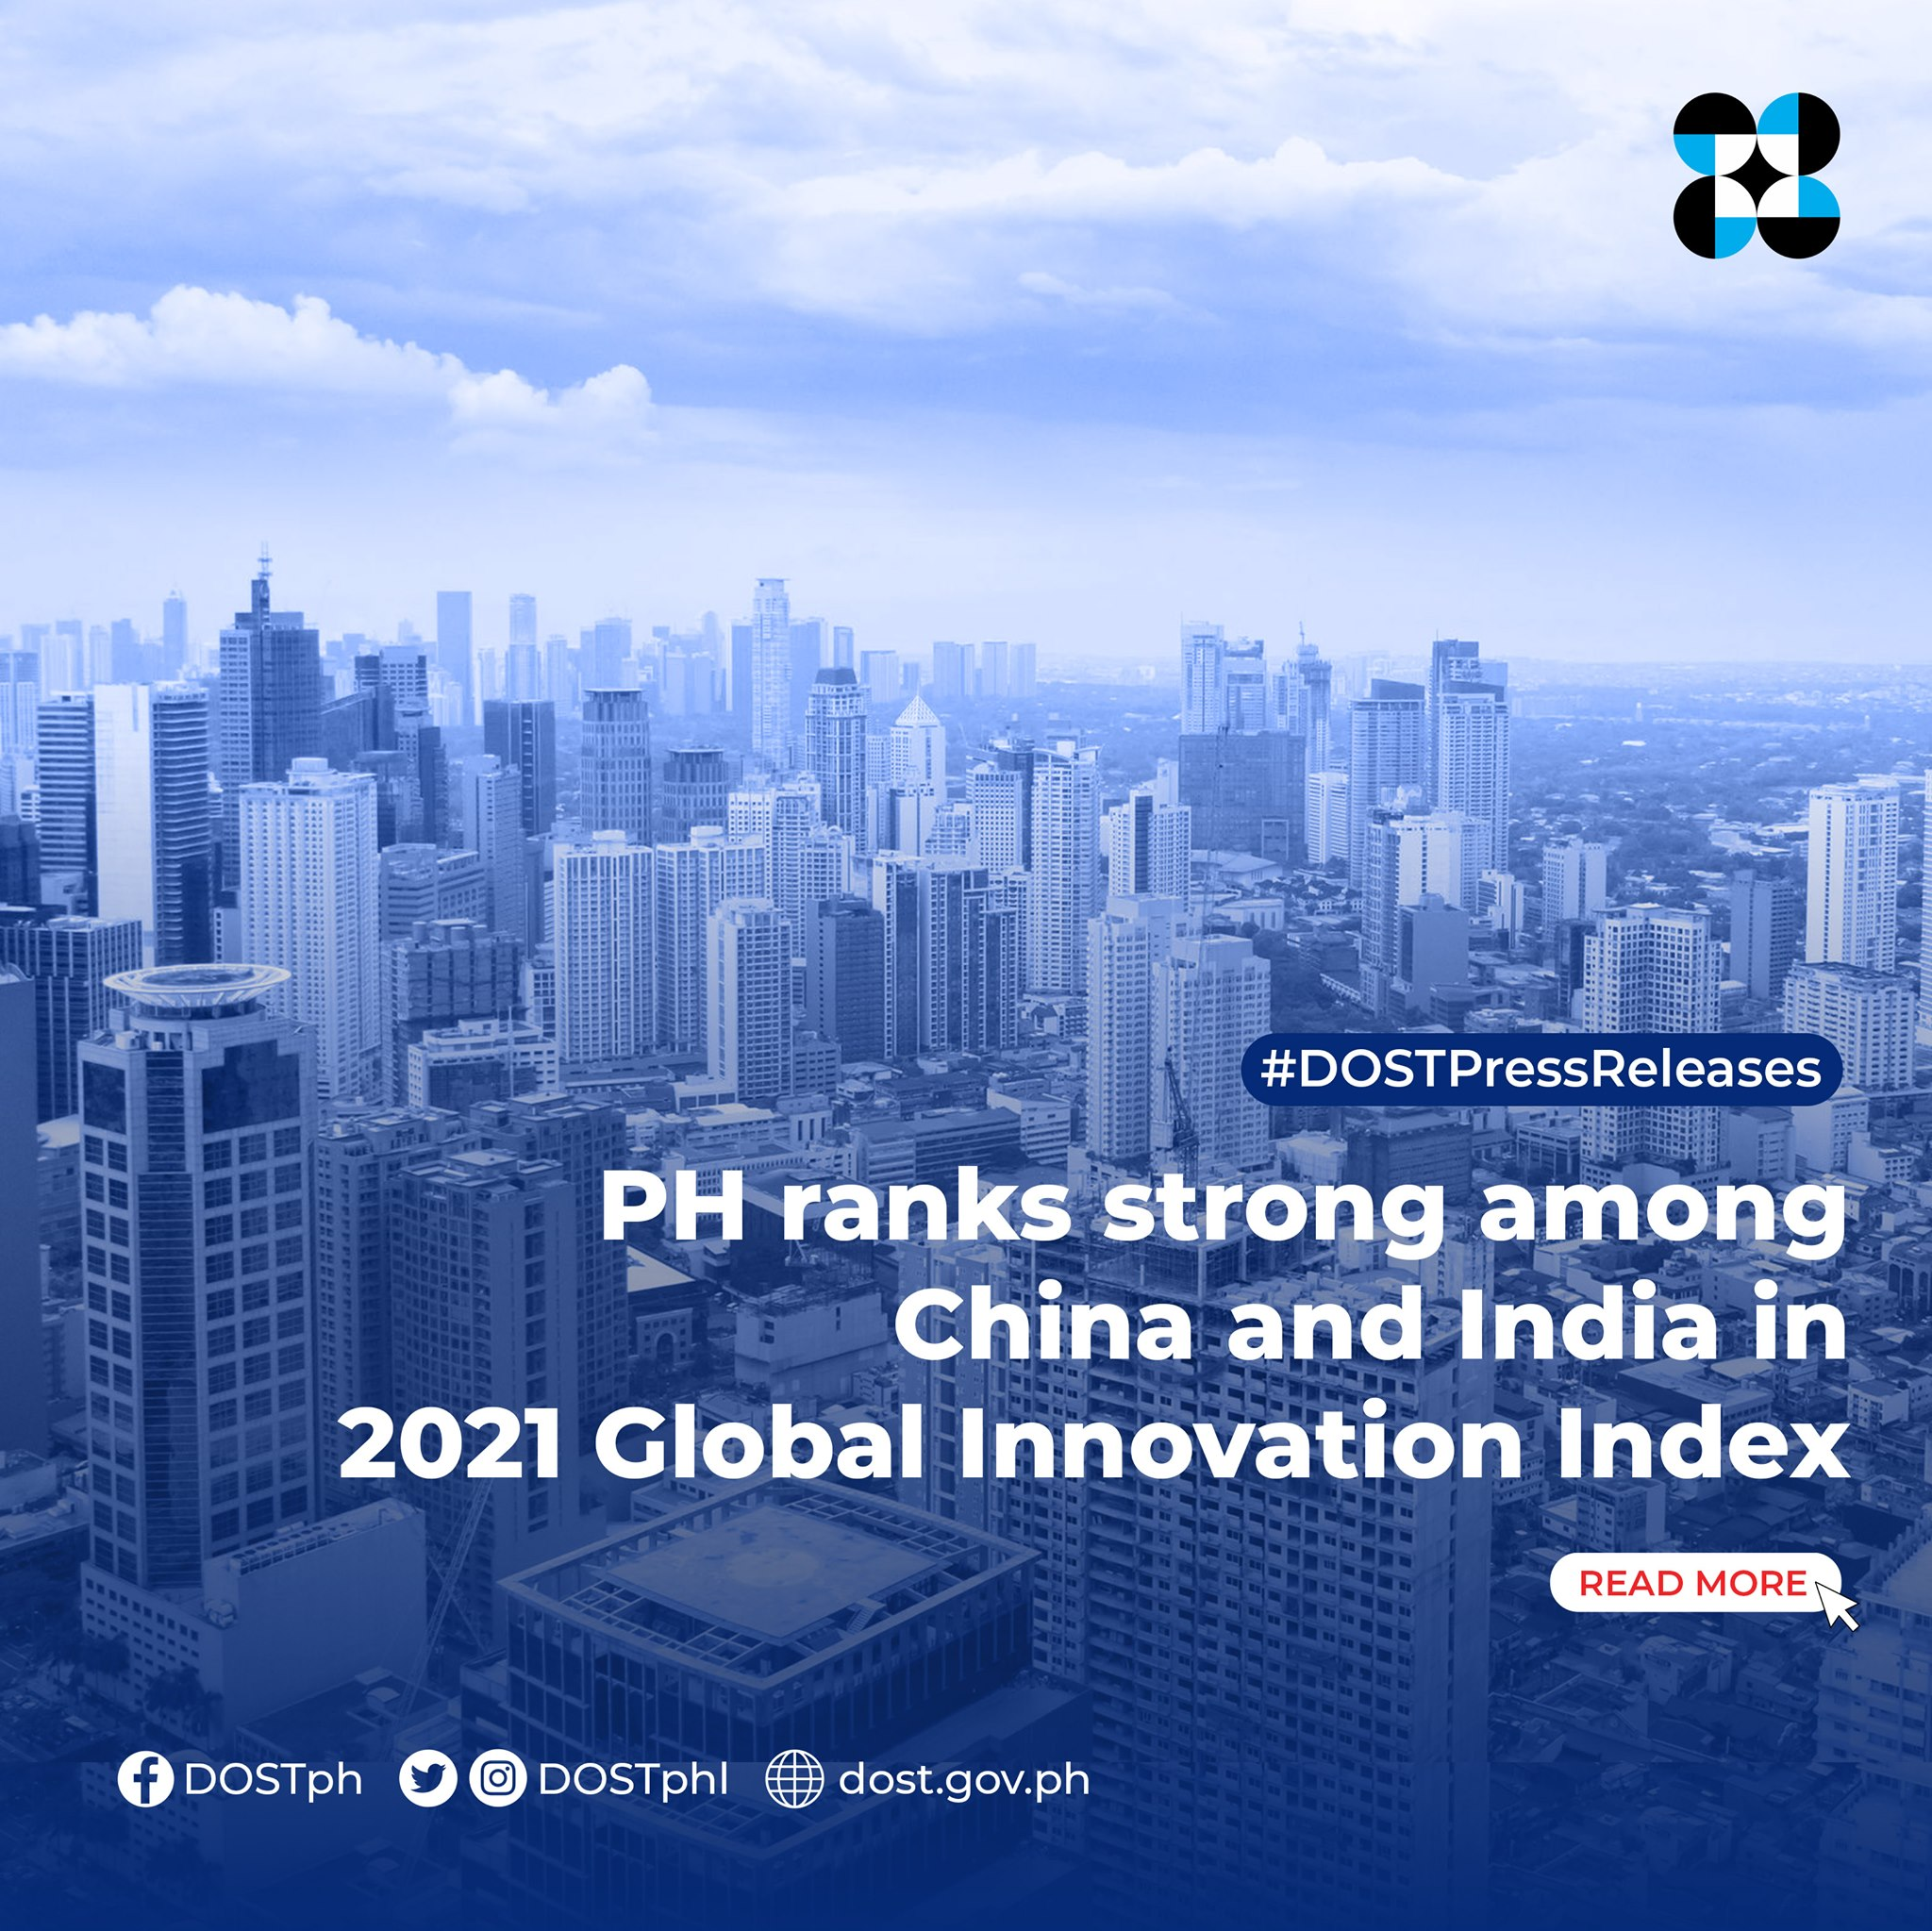 PH ranks strong among China and India in 2021 Global Innovation Index image